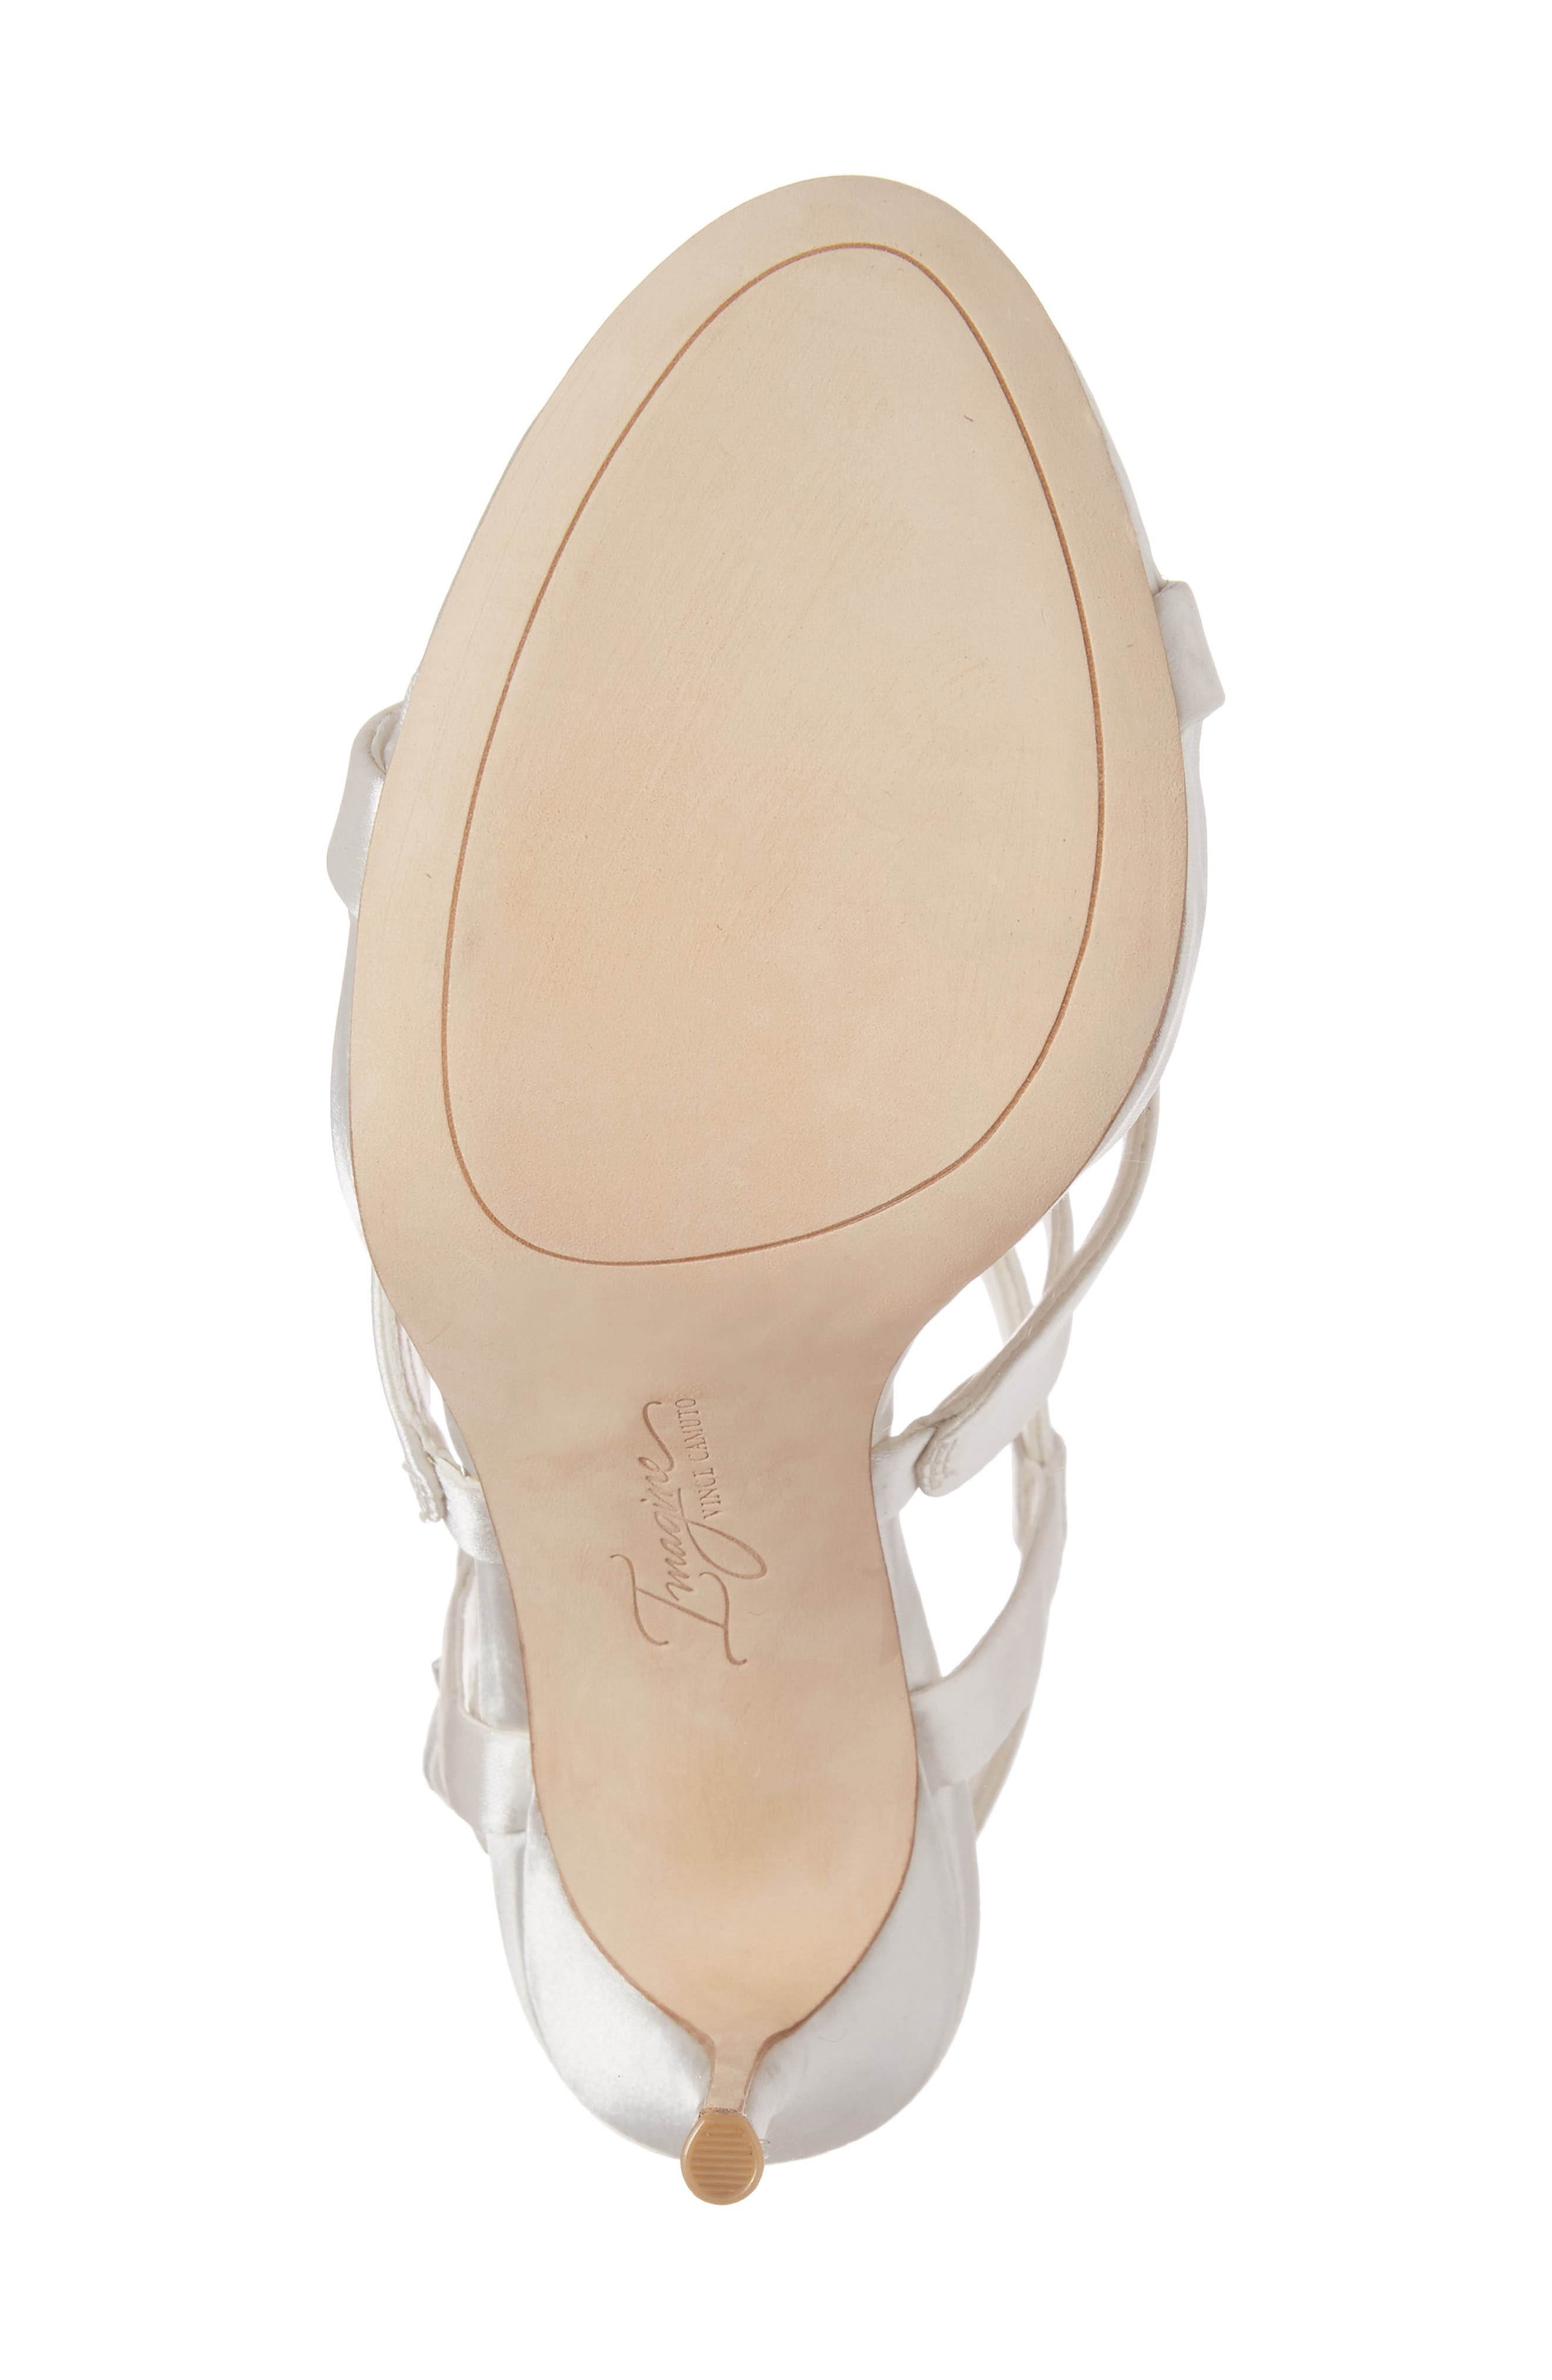 Daija Sandal,                             Alternate thumbnail 6, color,                             Ivory Satin